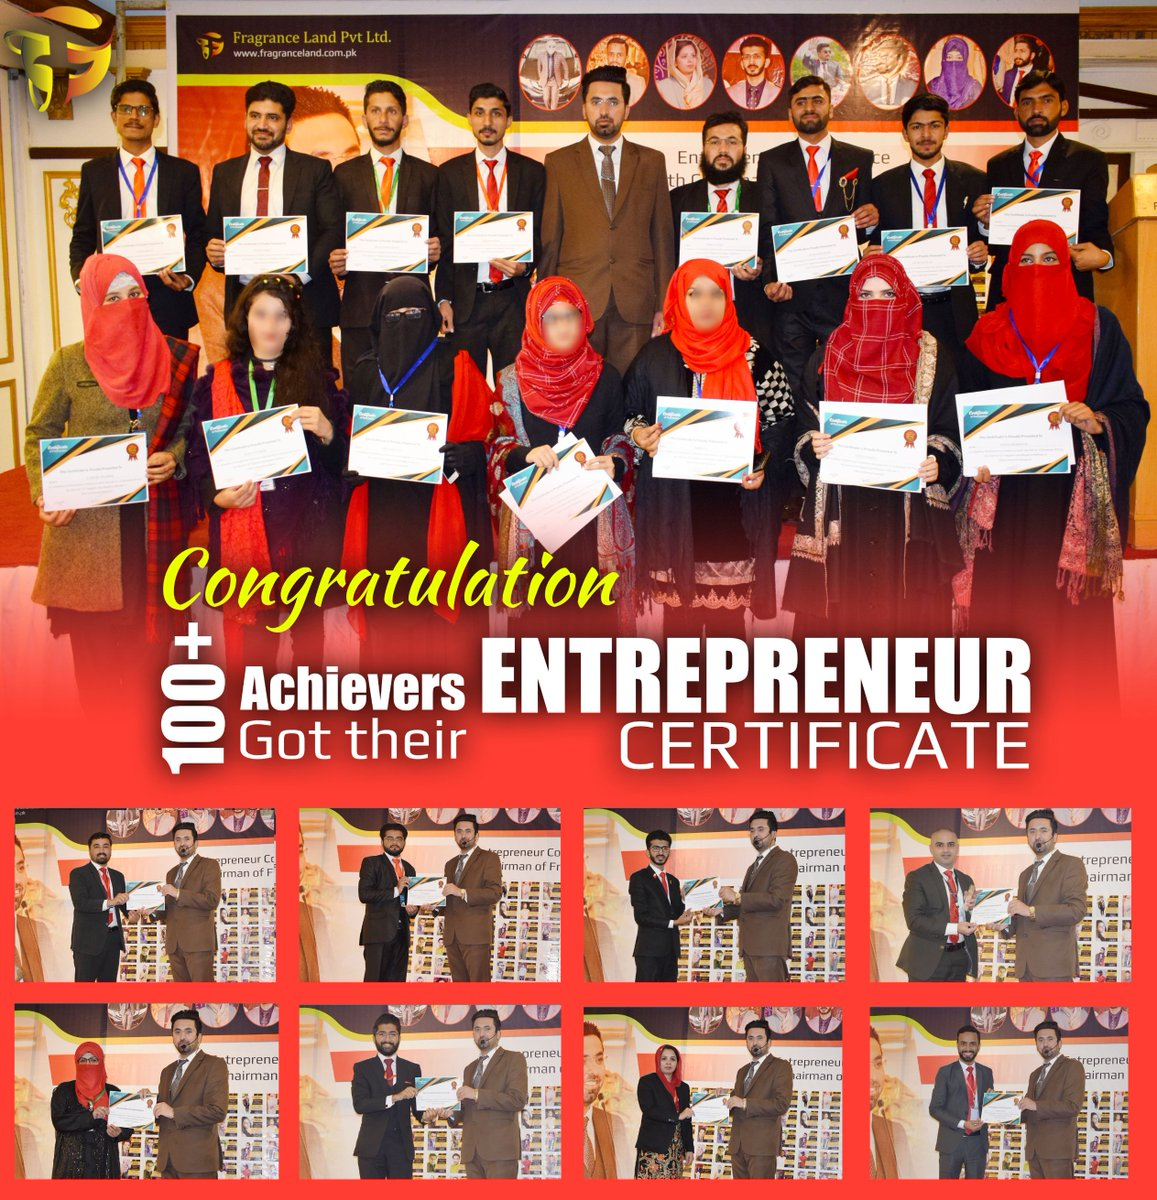 RT @LandFragrance: Congratulation to All Achievers of Entrepreneur Conference 100+ Candidate achieve their Entrepreneur Certificate #Congratulation #Achievers #Entrepreneur_Conference #conference #entrepreneurship #chairman_fragranceland #fragranceland #…pic.twitter.com/IPtCaxOwef